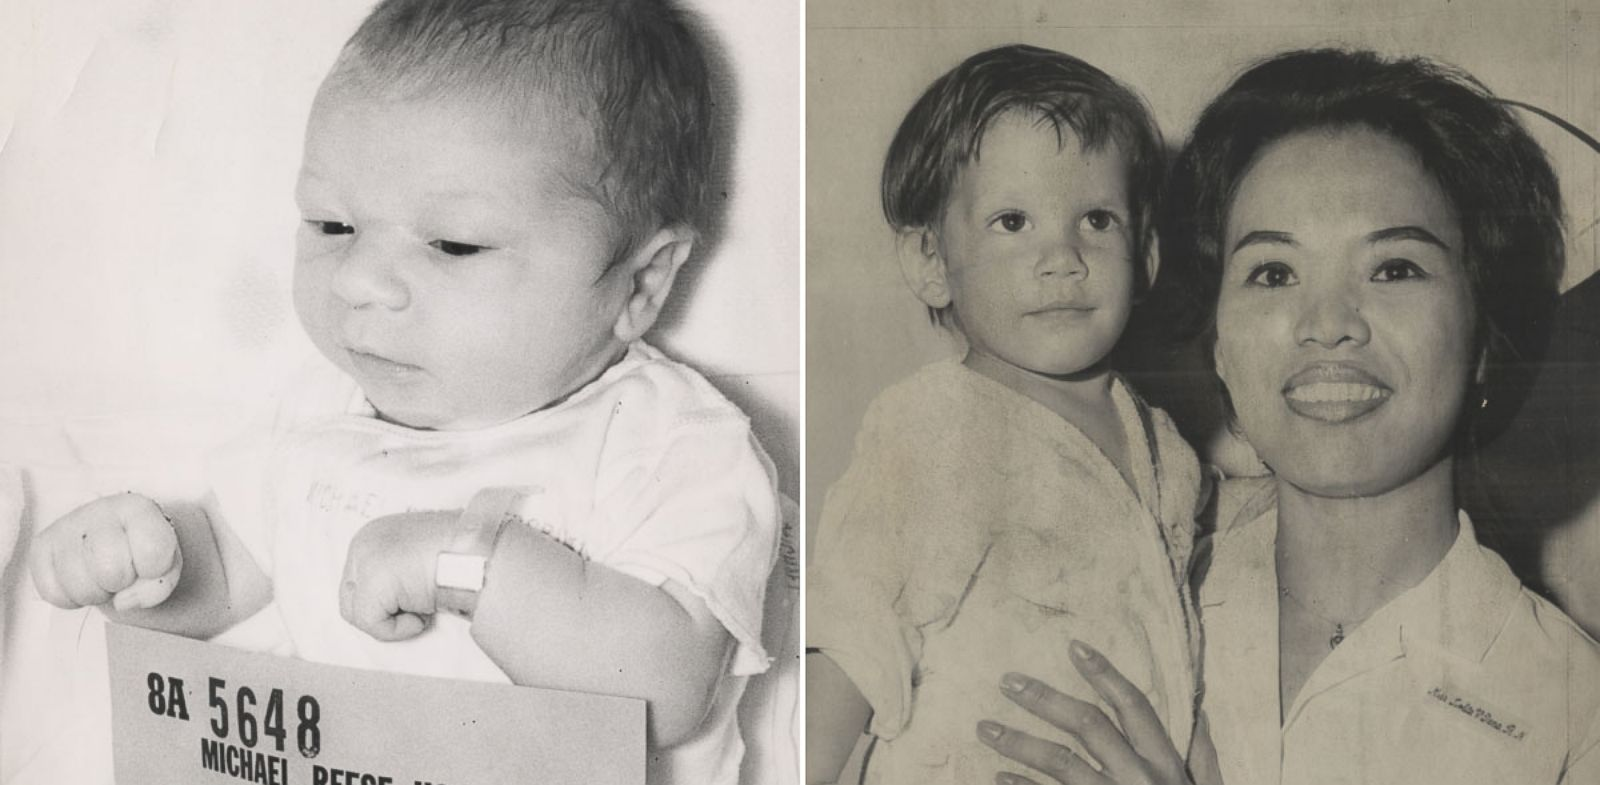 PHOTO: In 1964, the baby on the left was stolen from a Chicago, Ill., hospital. Fourteen months later, in Newark, N.J., the little boy on the right was found abandoned.